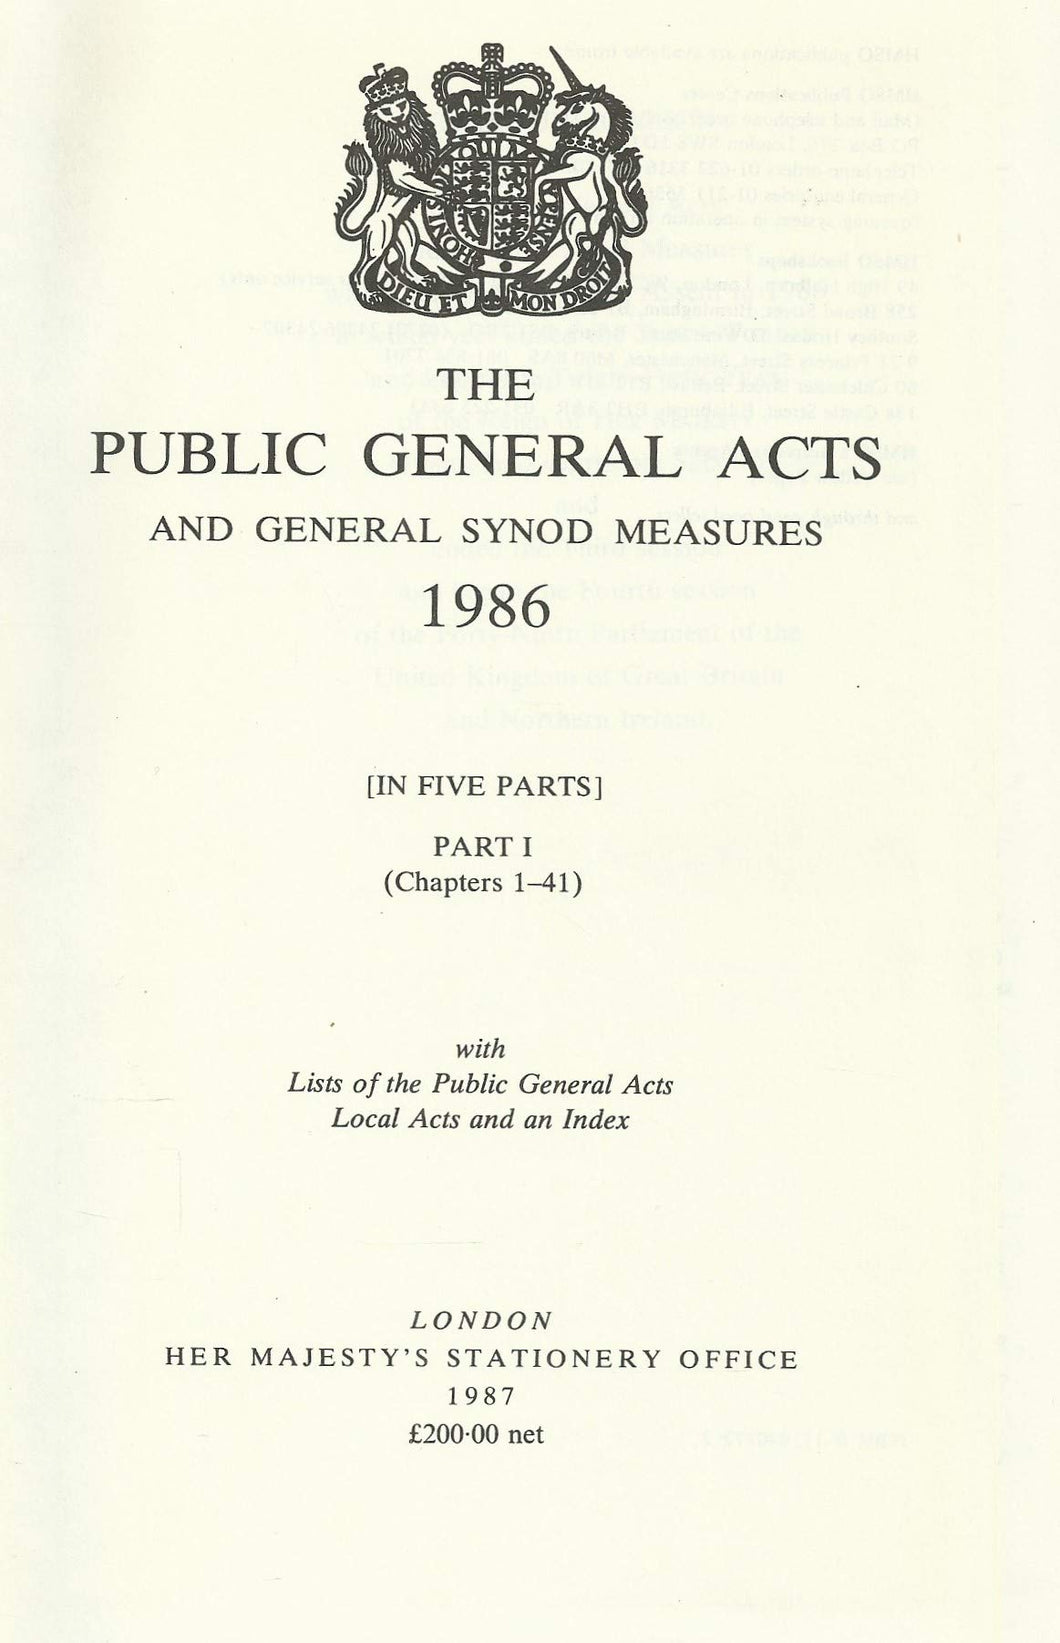 The Public General Acts and General Synod Measures 1986